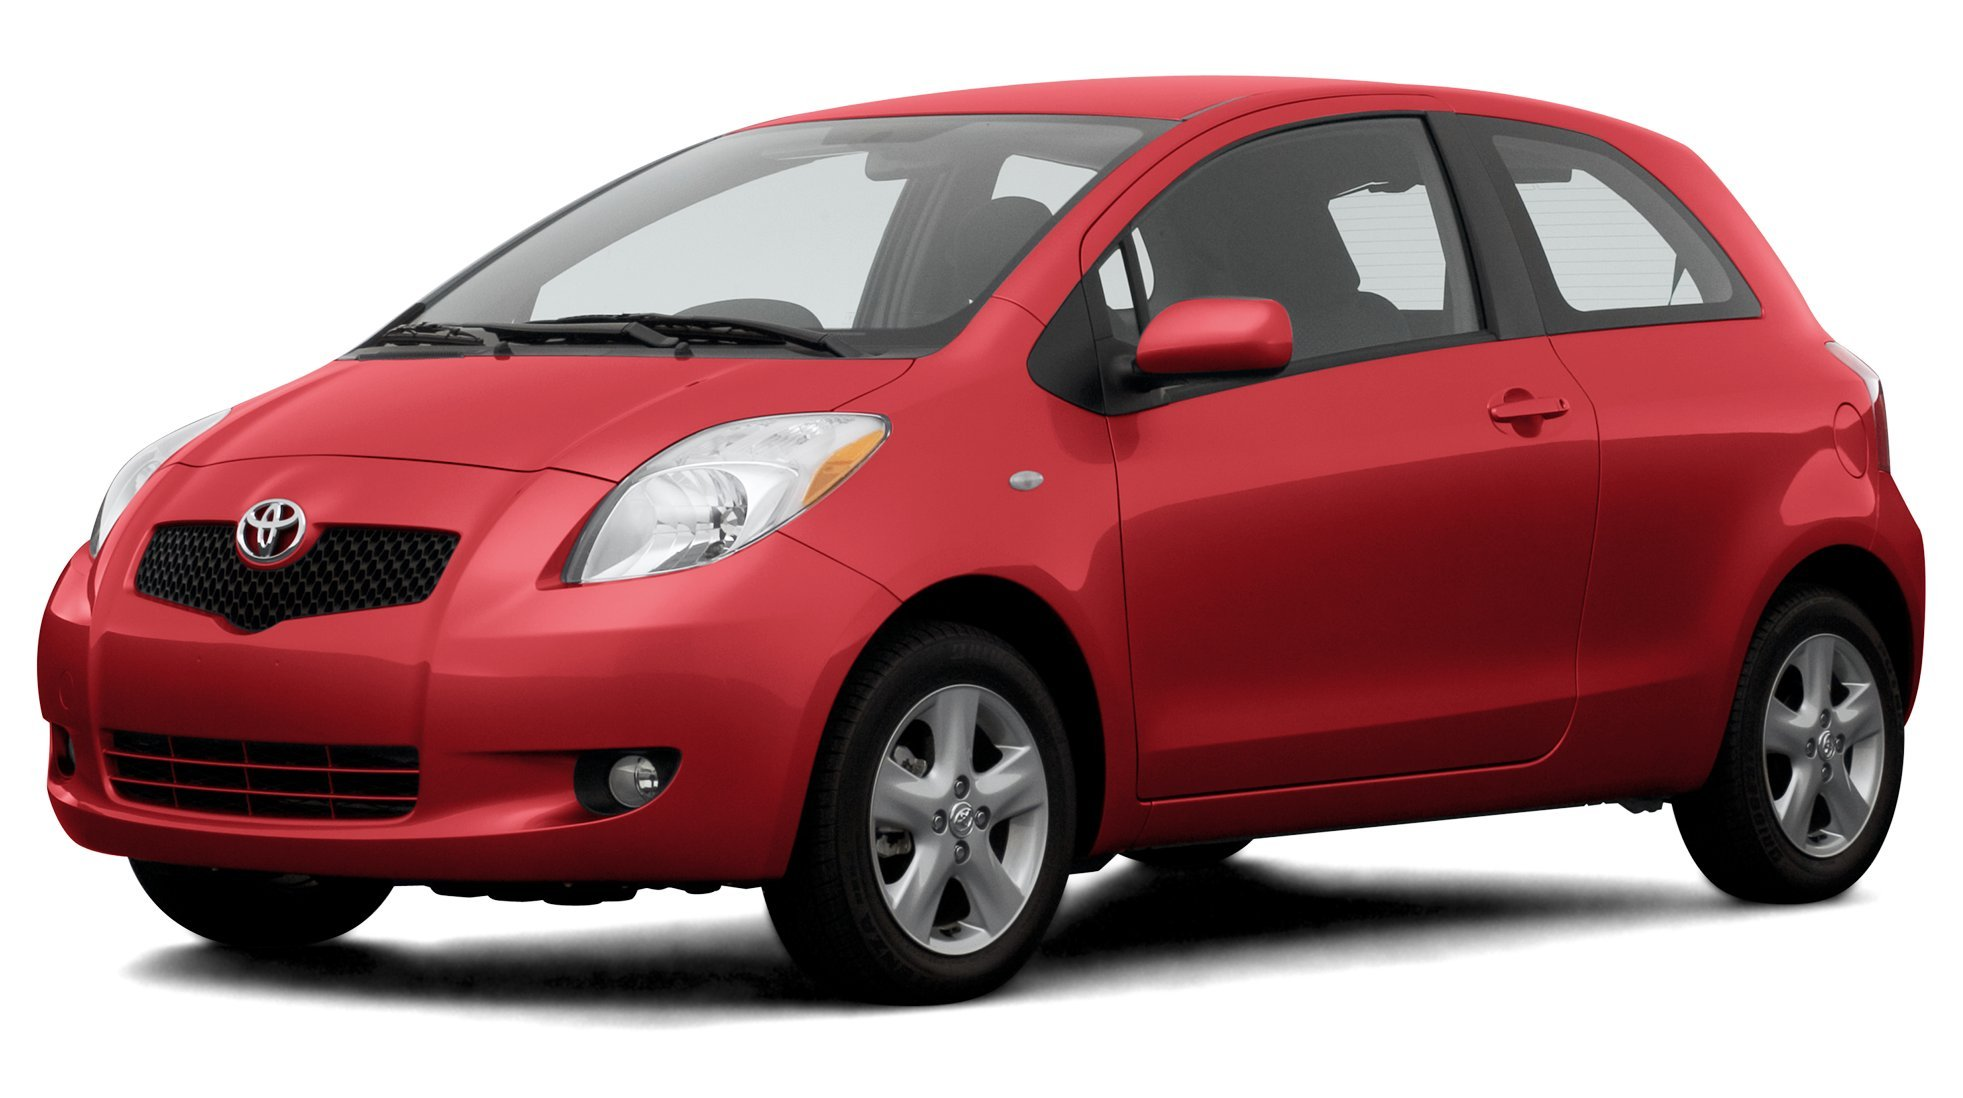 2007 toyota yaris reviews images and specs. Black Bedroom Furniture Sets. Home Design Ideas